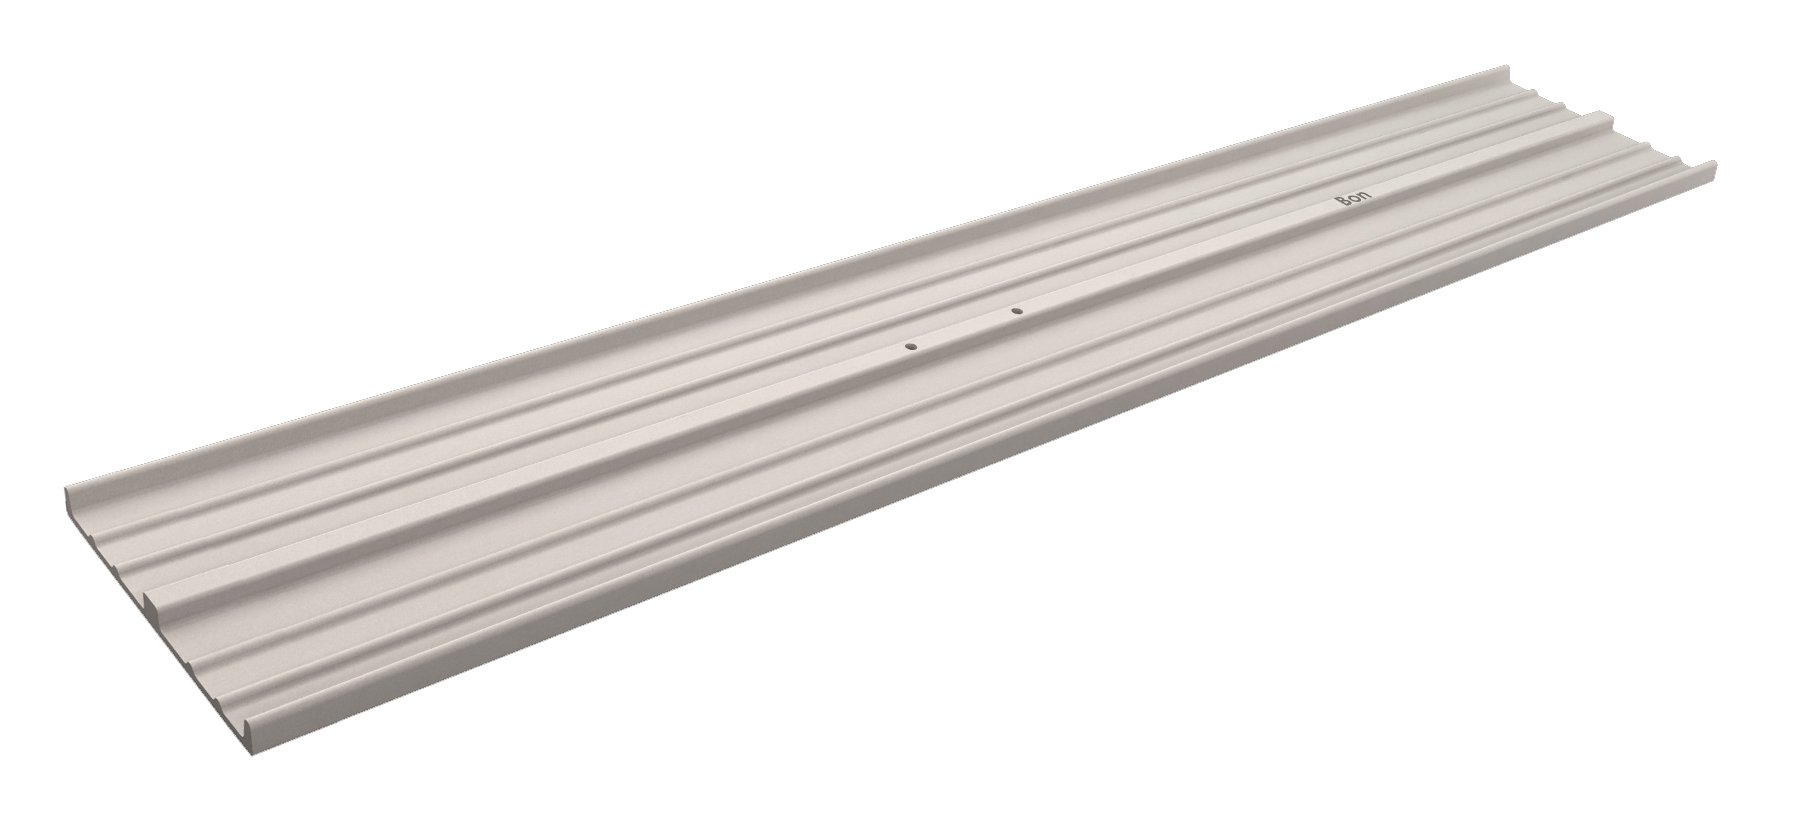 Bon 22-162 48-Inch by 8-Inch Square End Magnesium Bull Float